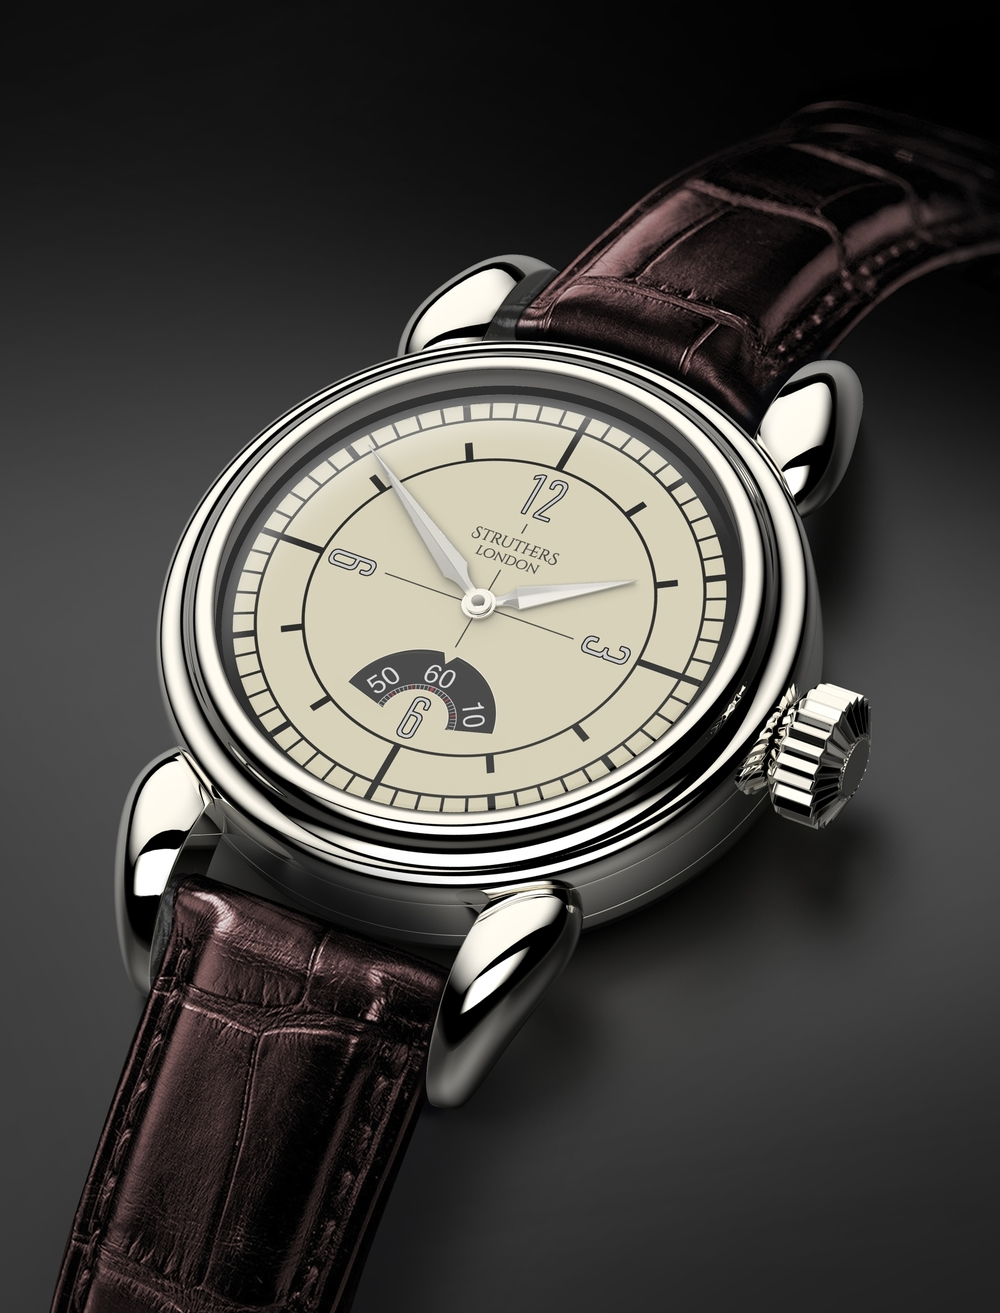 Struthers for Morgan II Aero 8 Edition WatchPro Luxury Watch of the Year Commendation 2015